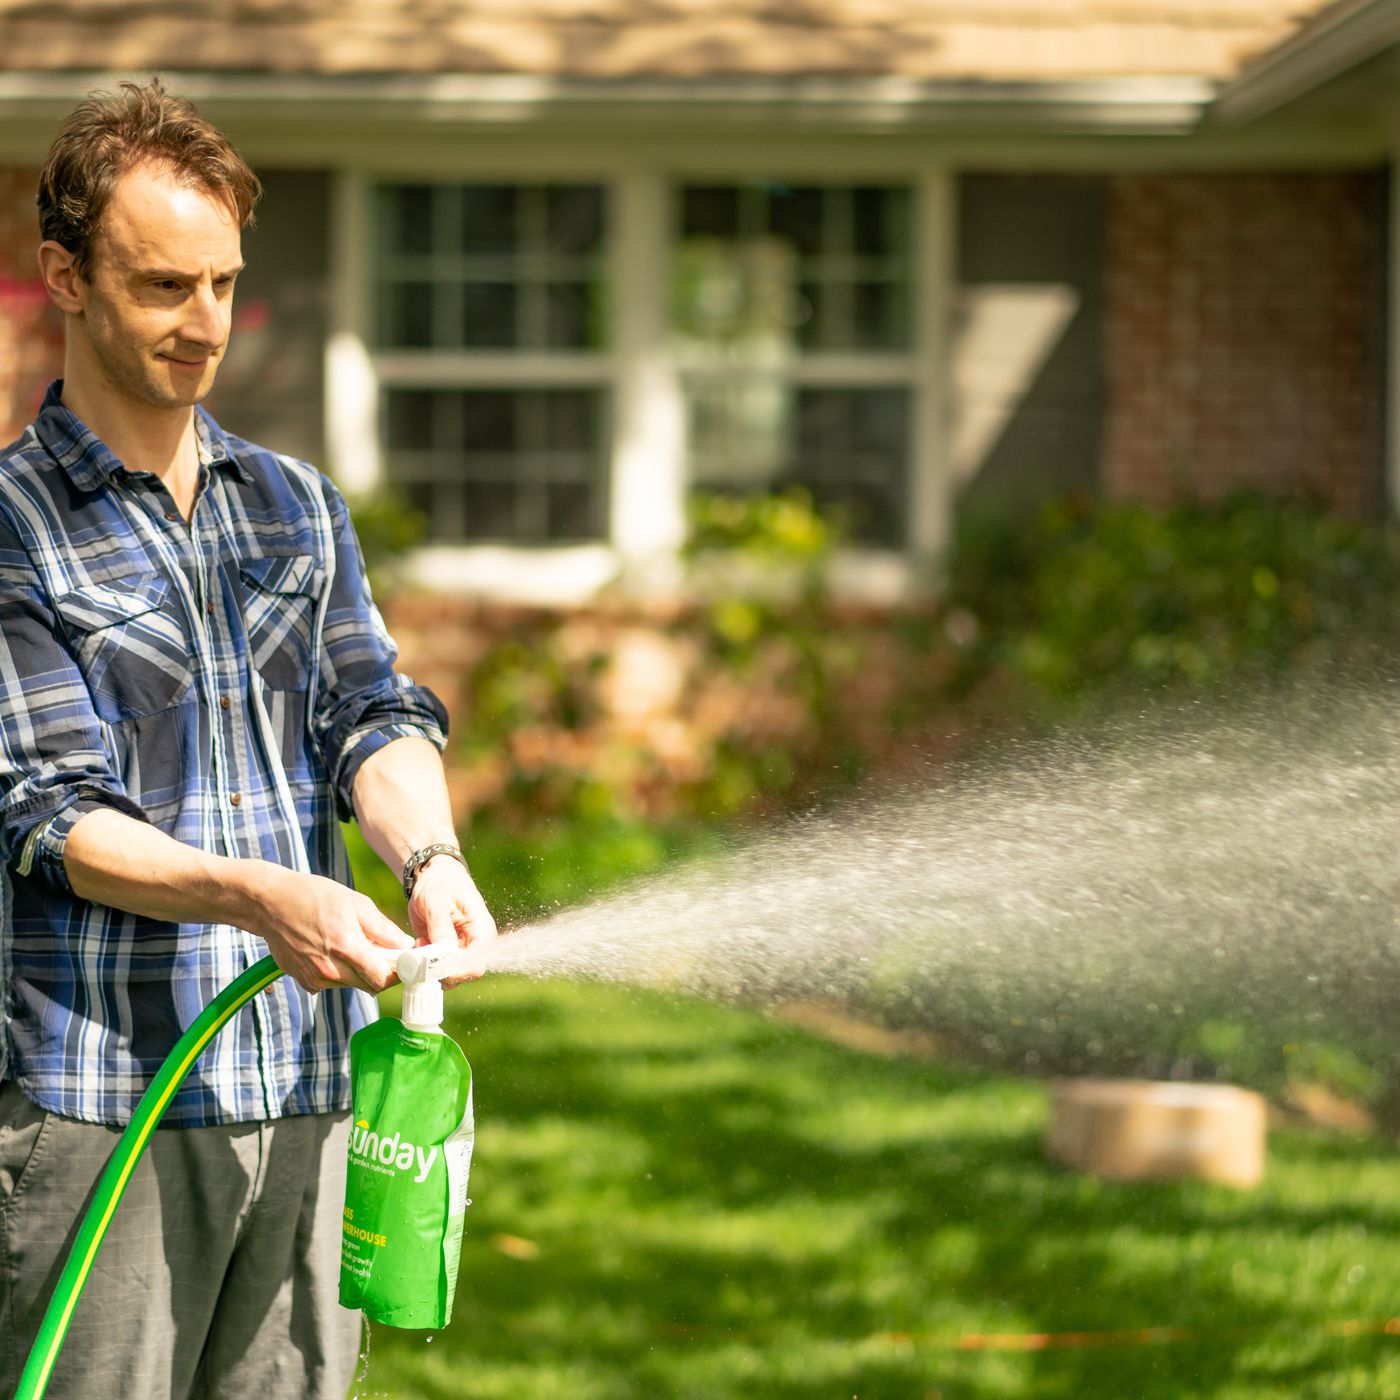 Lawn Care Startup Sunday Wants To